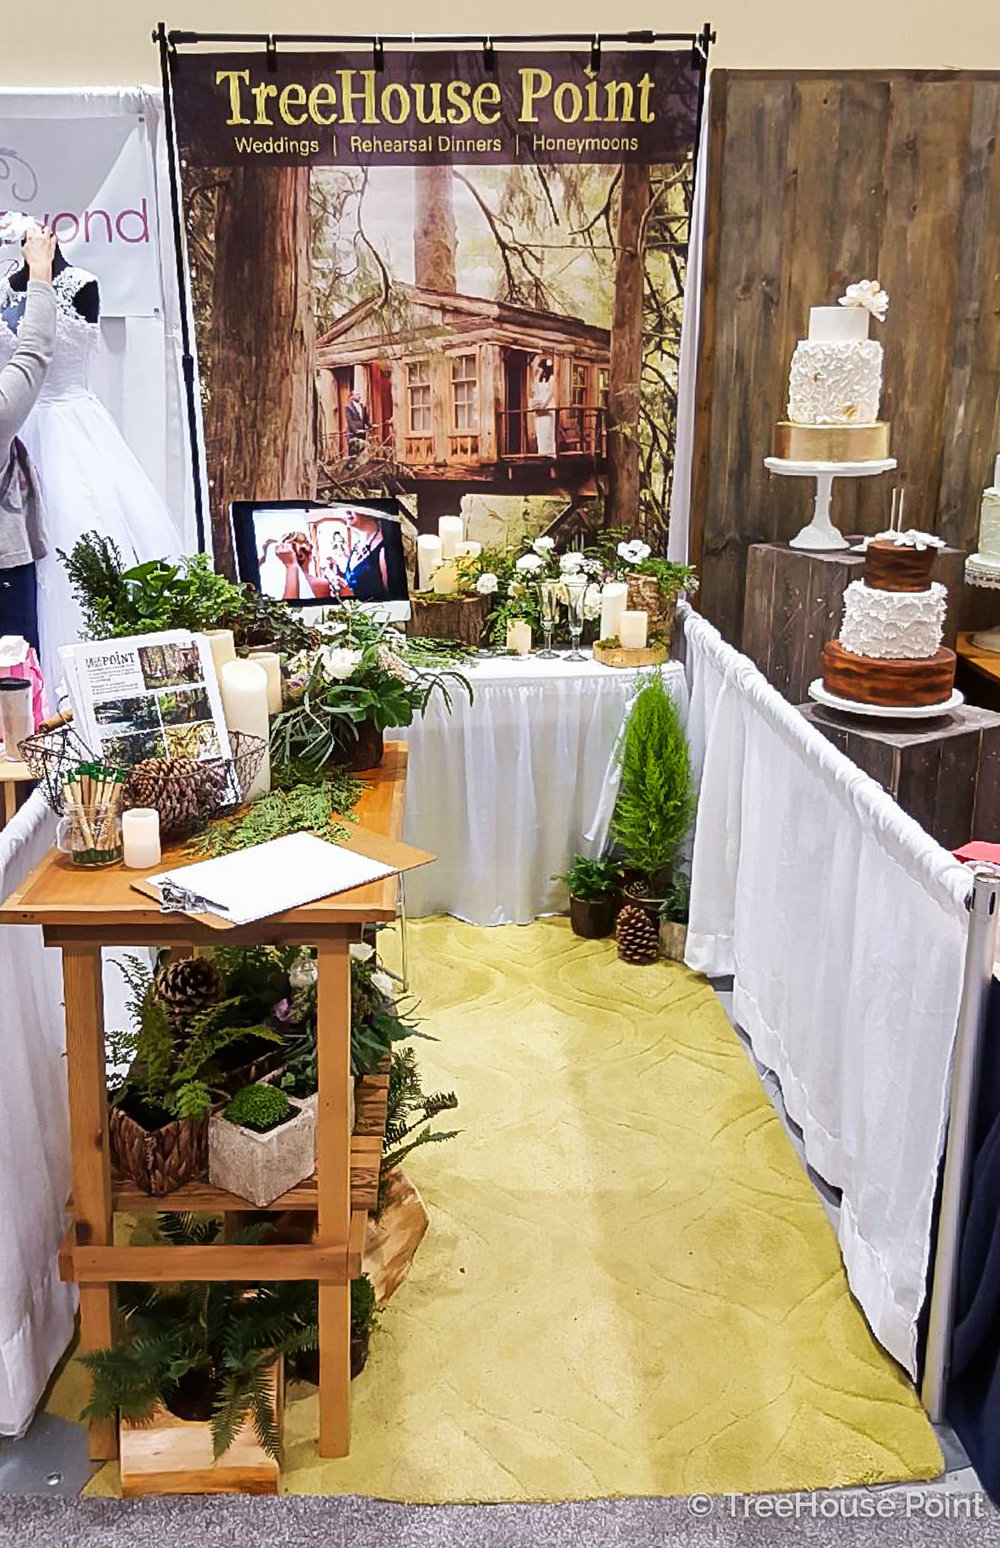 Our display at the 2016 Seattle Wedding show.